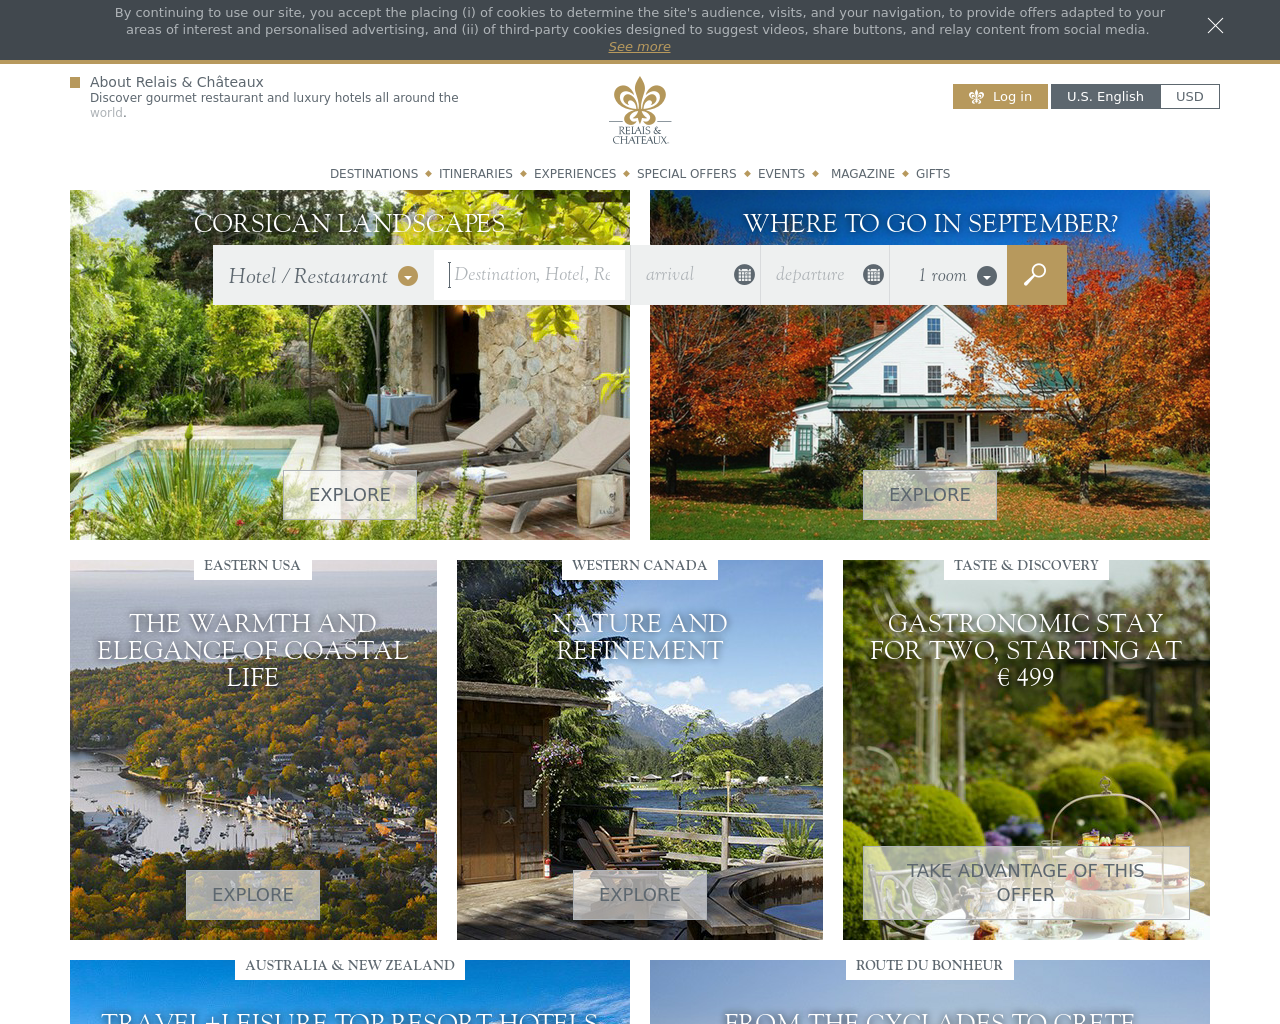 Relaischateaux.com-Advertising-Reviews-Pricing